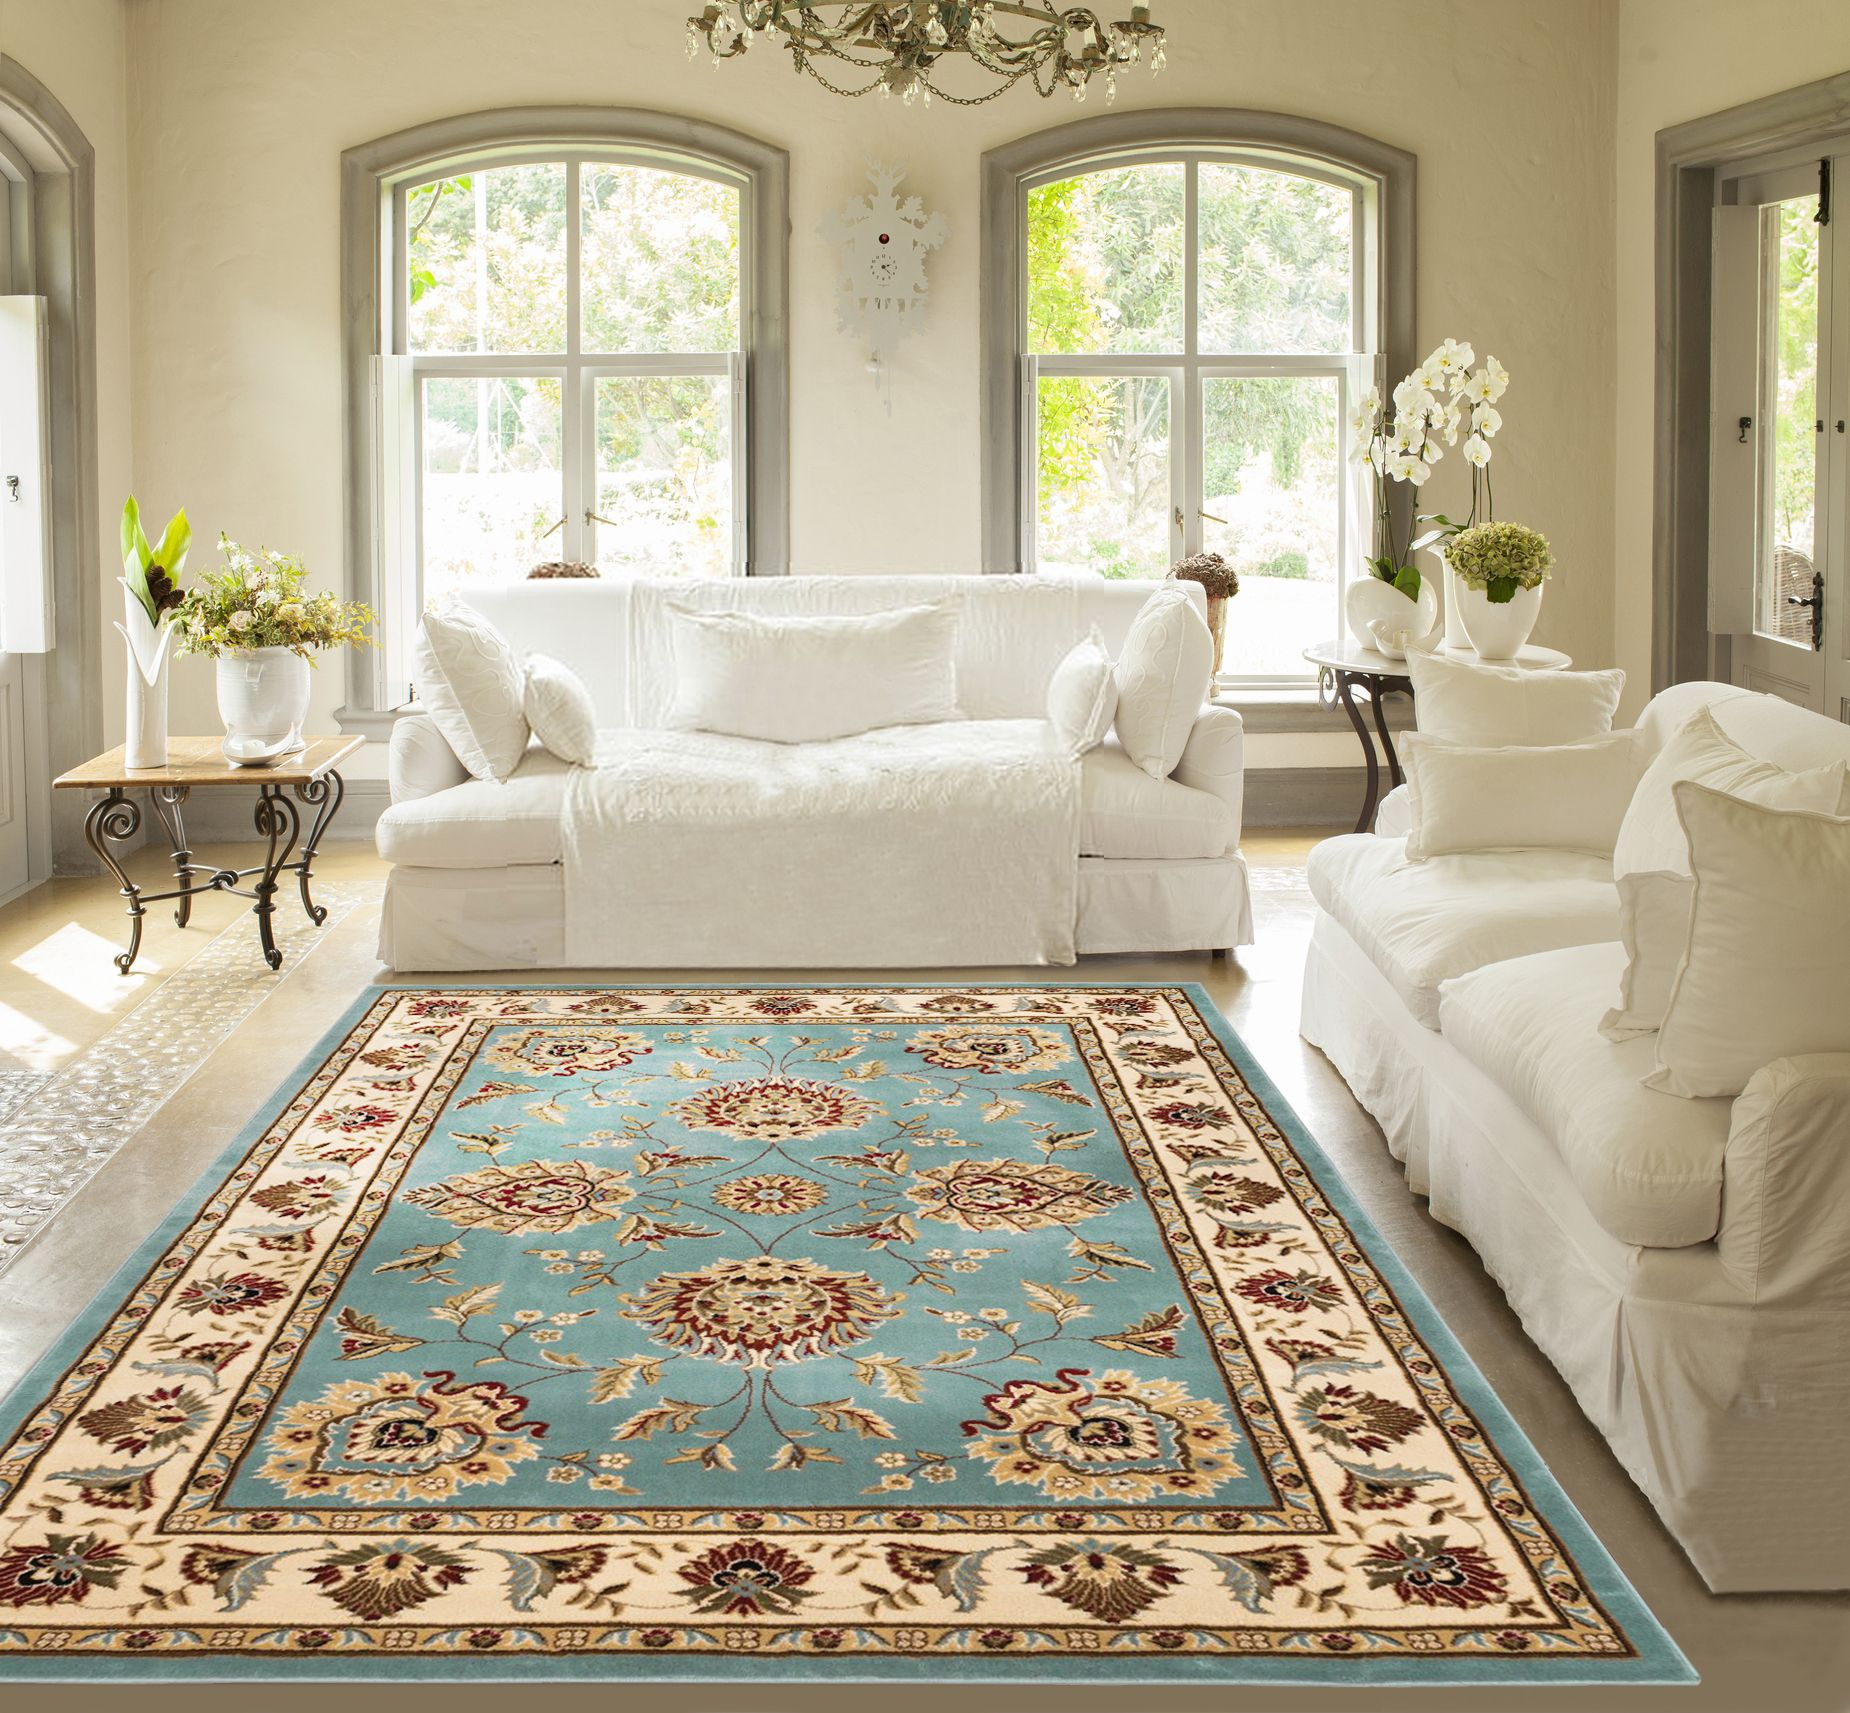 Well Woven Timeless Abbasi Traditional Area or Runner Rug